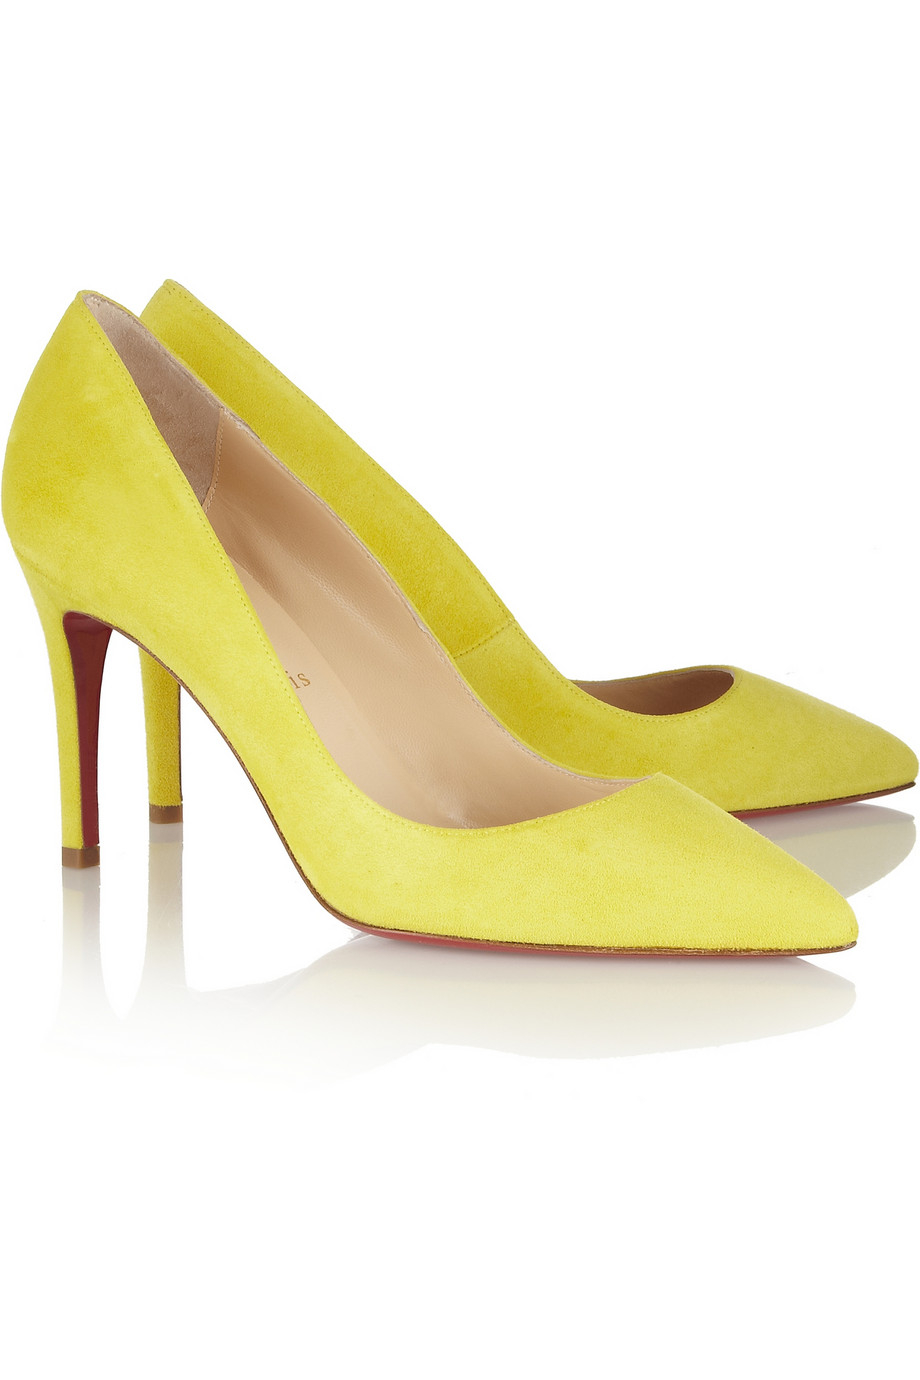 5119202d92c Christian Louboutin Yellow Pigalle 85 Suede Pumps